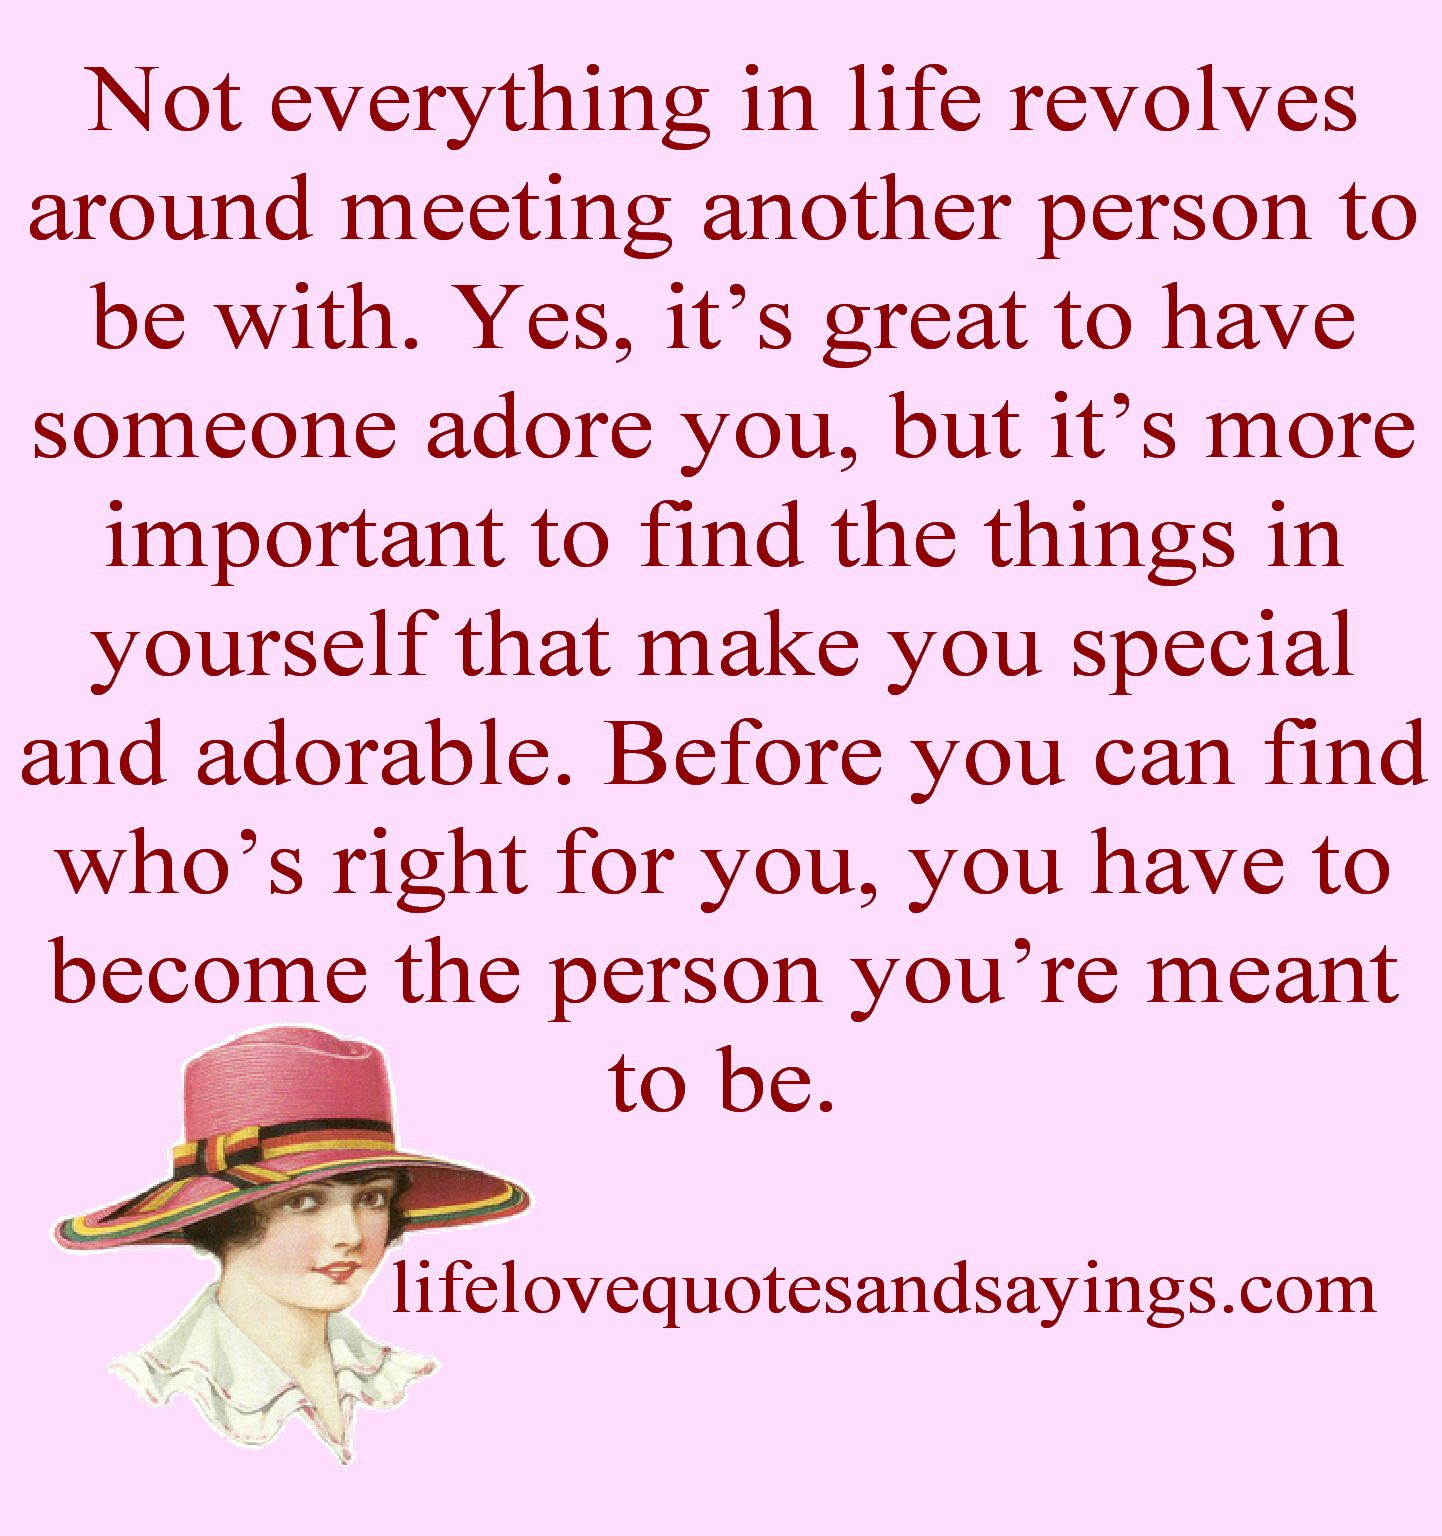 Have A Great Life Quotes Not Everything In Life Revolves Around Meeting Another Person To